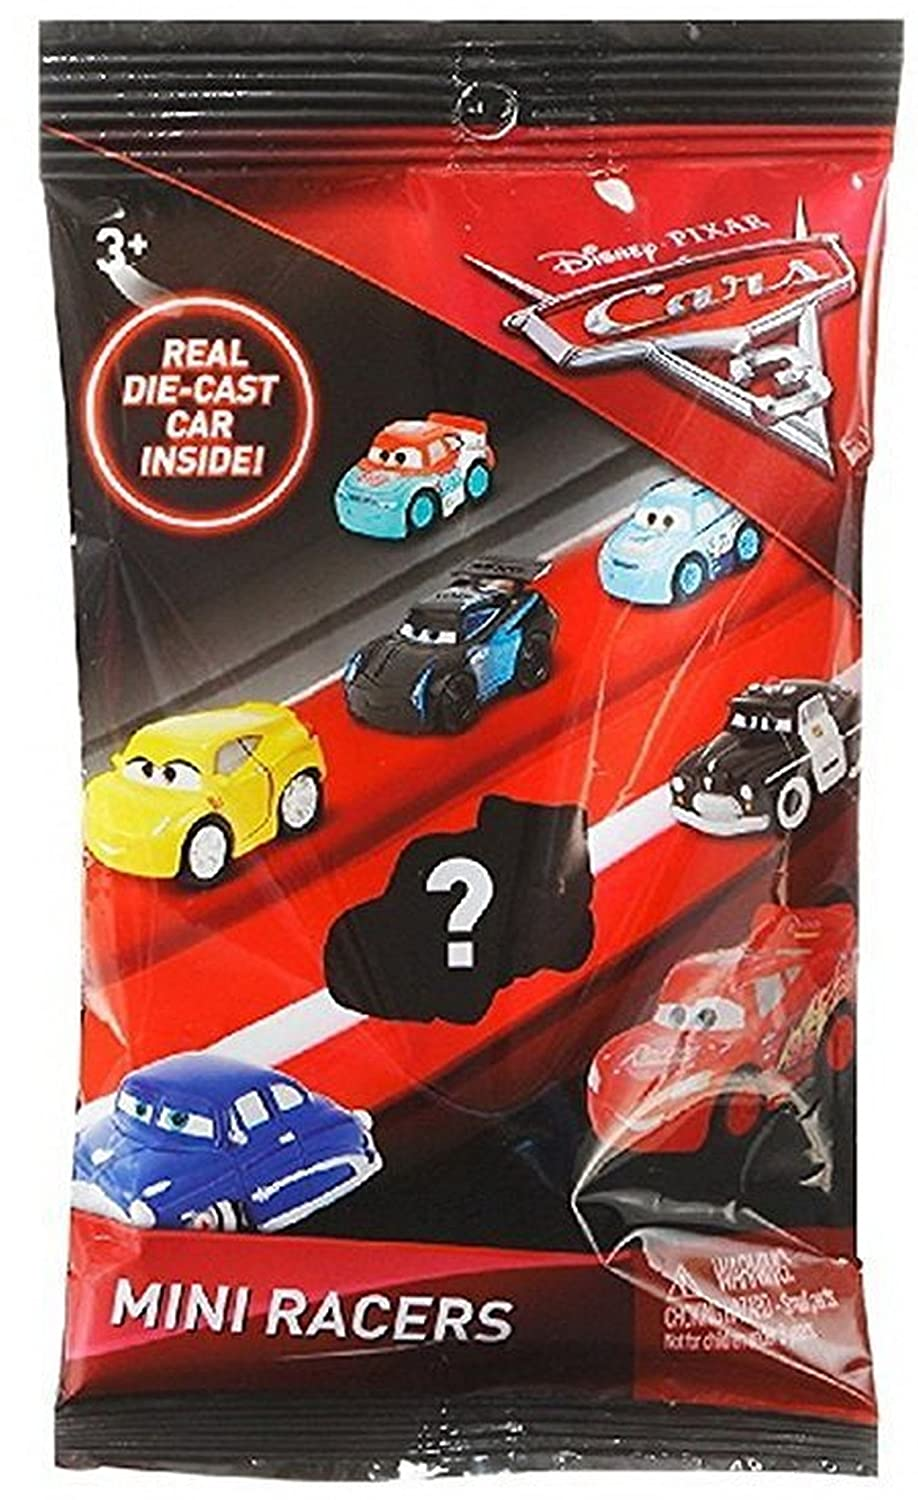 Disney Bundle of 6 Pixar Cars 3 Die-Cast Mini Racers Blind Bags 6 3, Bundle of 6 Pixar Cars 3 Die-Cast Mini Rac, Pack of 6 Mattel